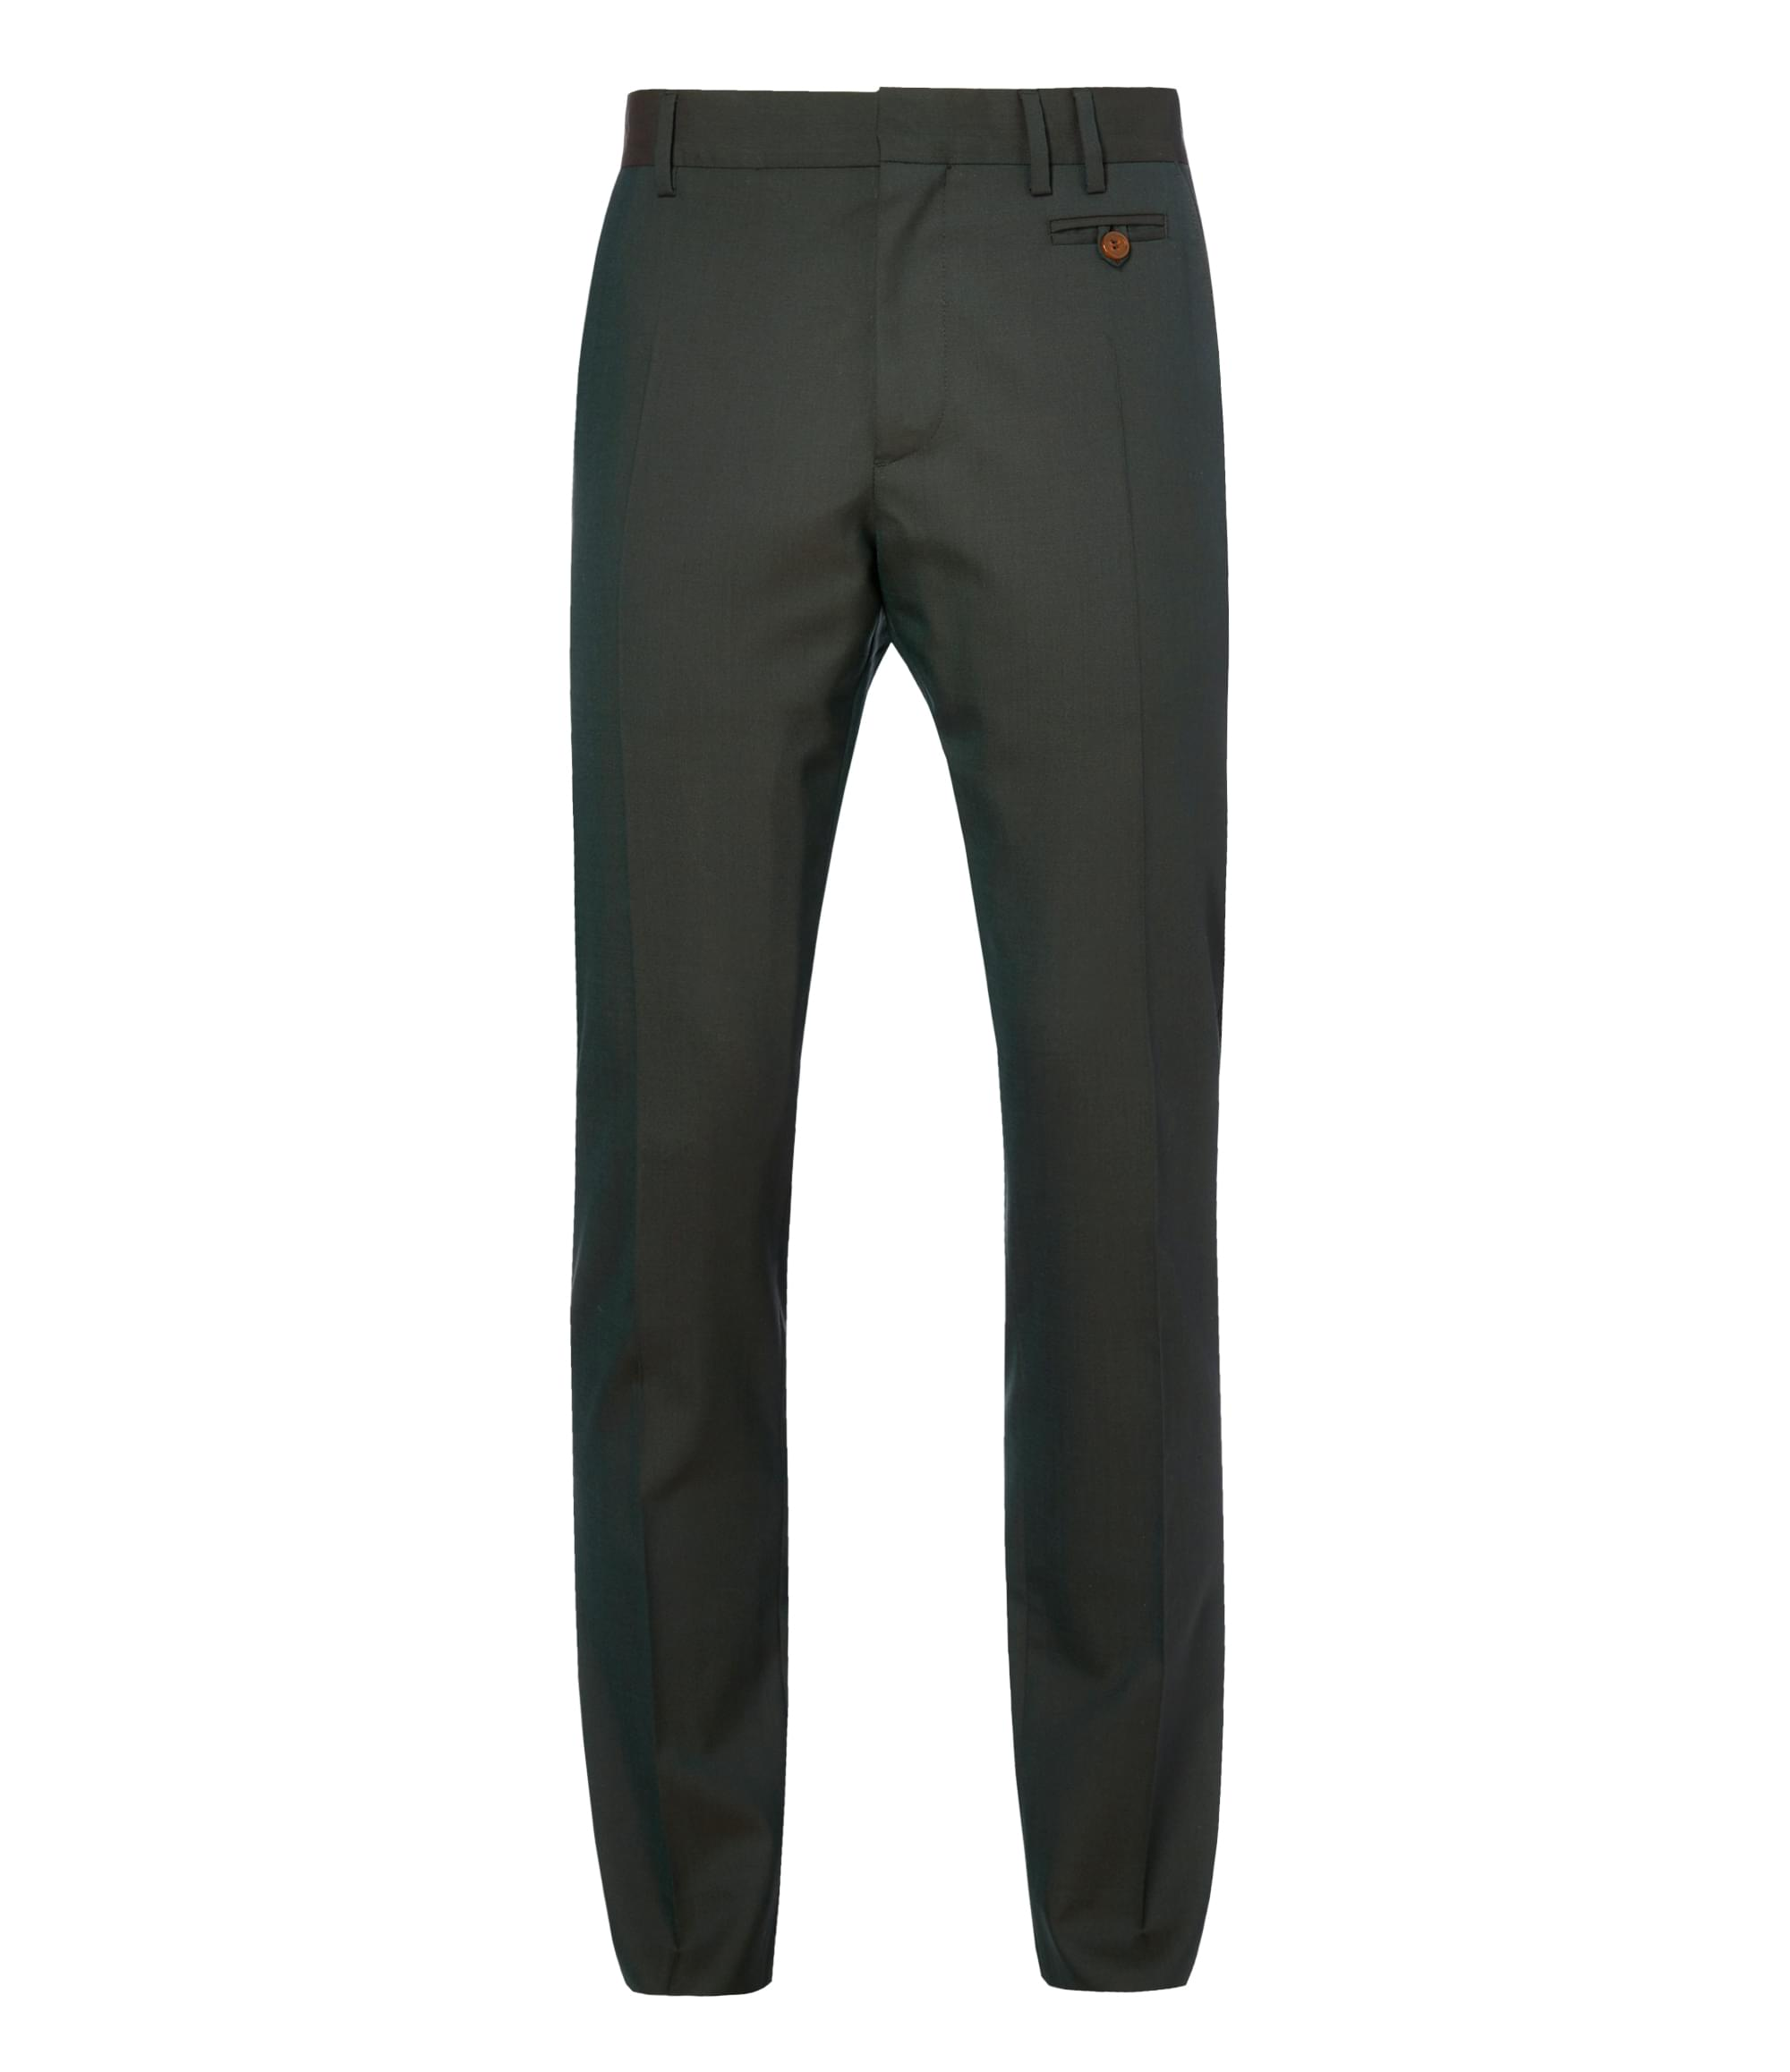 Vivienne Westwood Green Classic Trousers